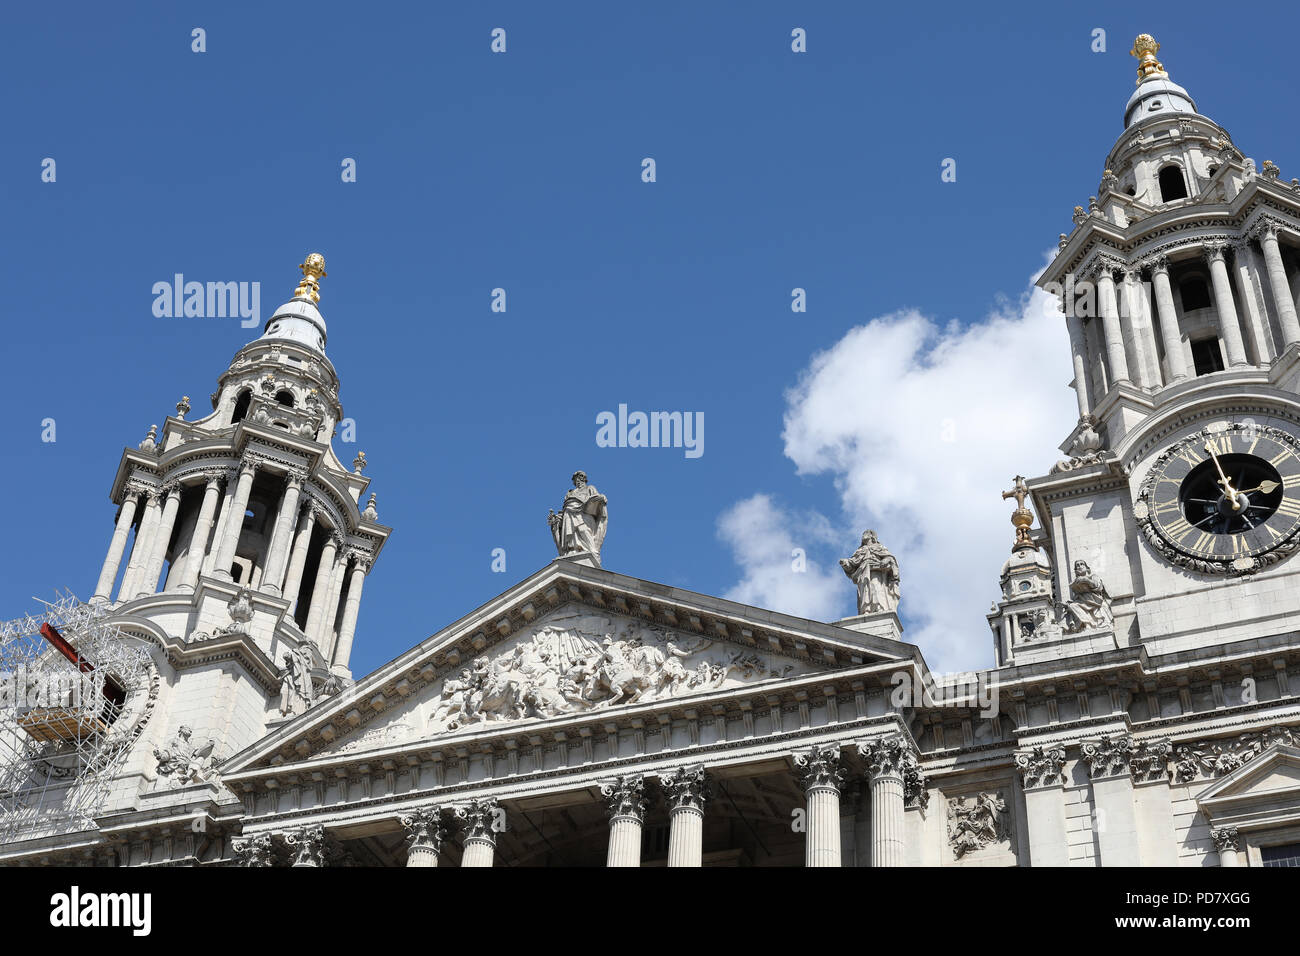 A view of St Paul's Cathedral, London Stock Photo